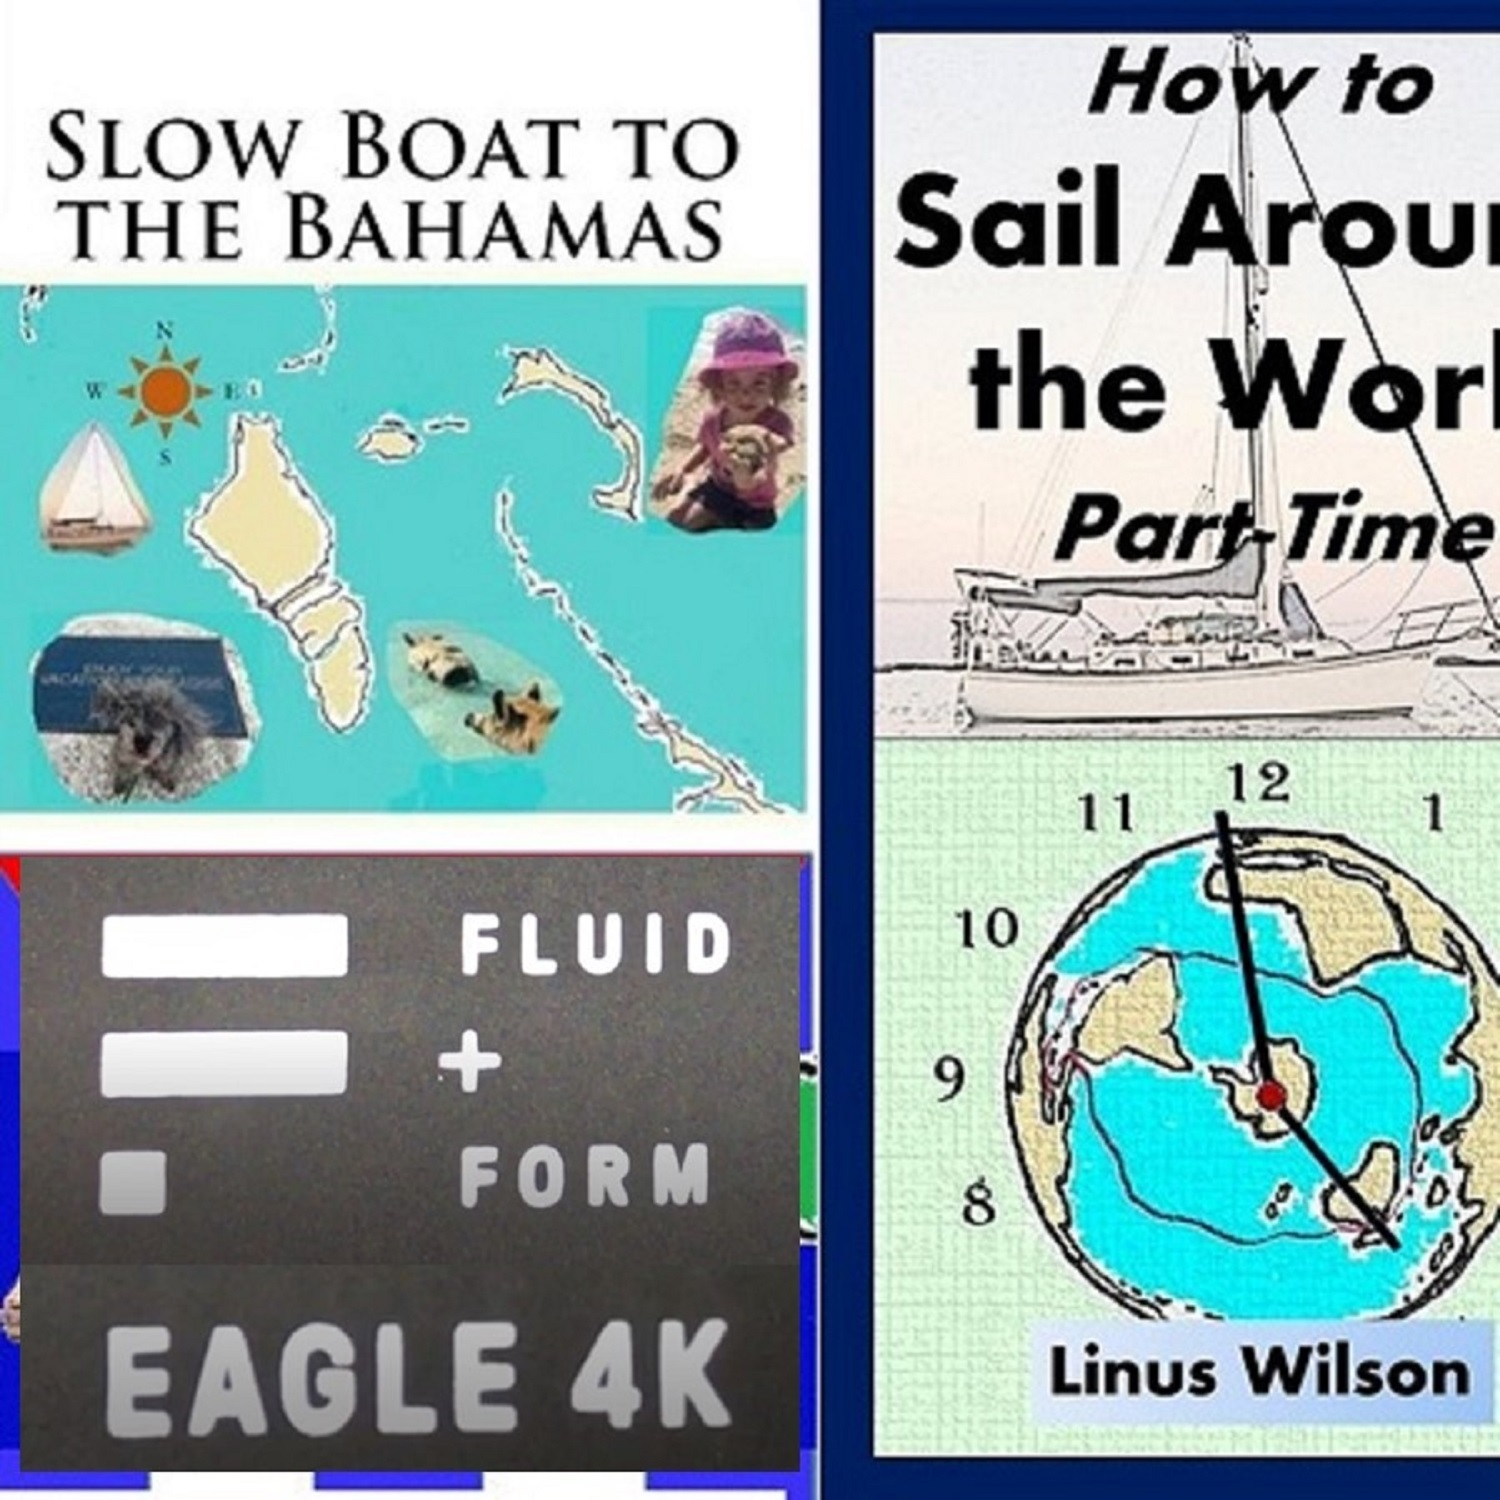 Ep. 41: HOAX? Sailboat Rescue Story Has Many Problems Hosted by Linus Wilson